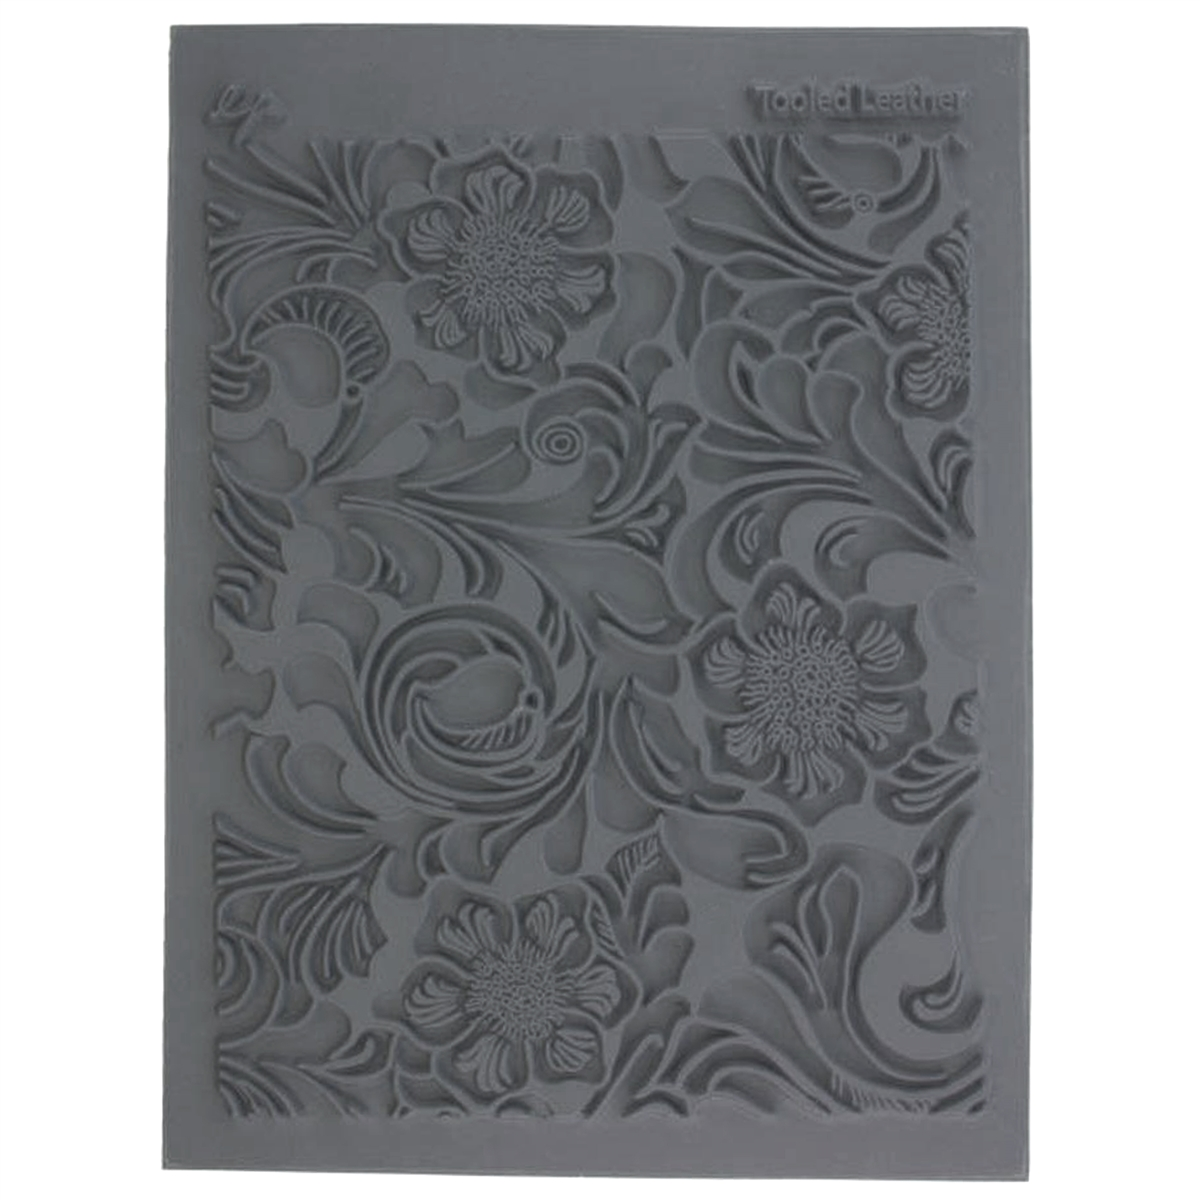 Tooled Leather Stamp Pads Jewelry Making 02739 Floral Pattern Imprinting Stamps Textured Embossing Supplies